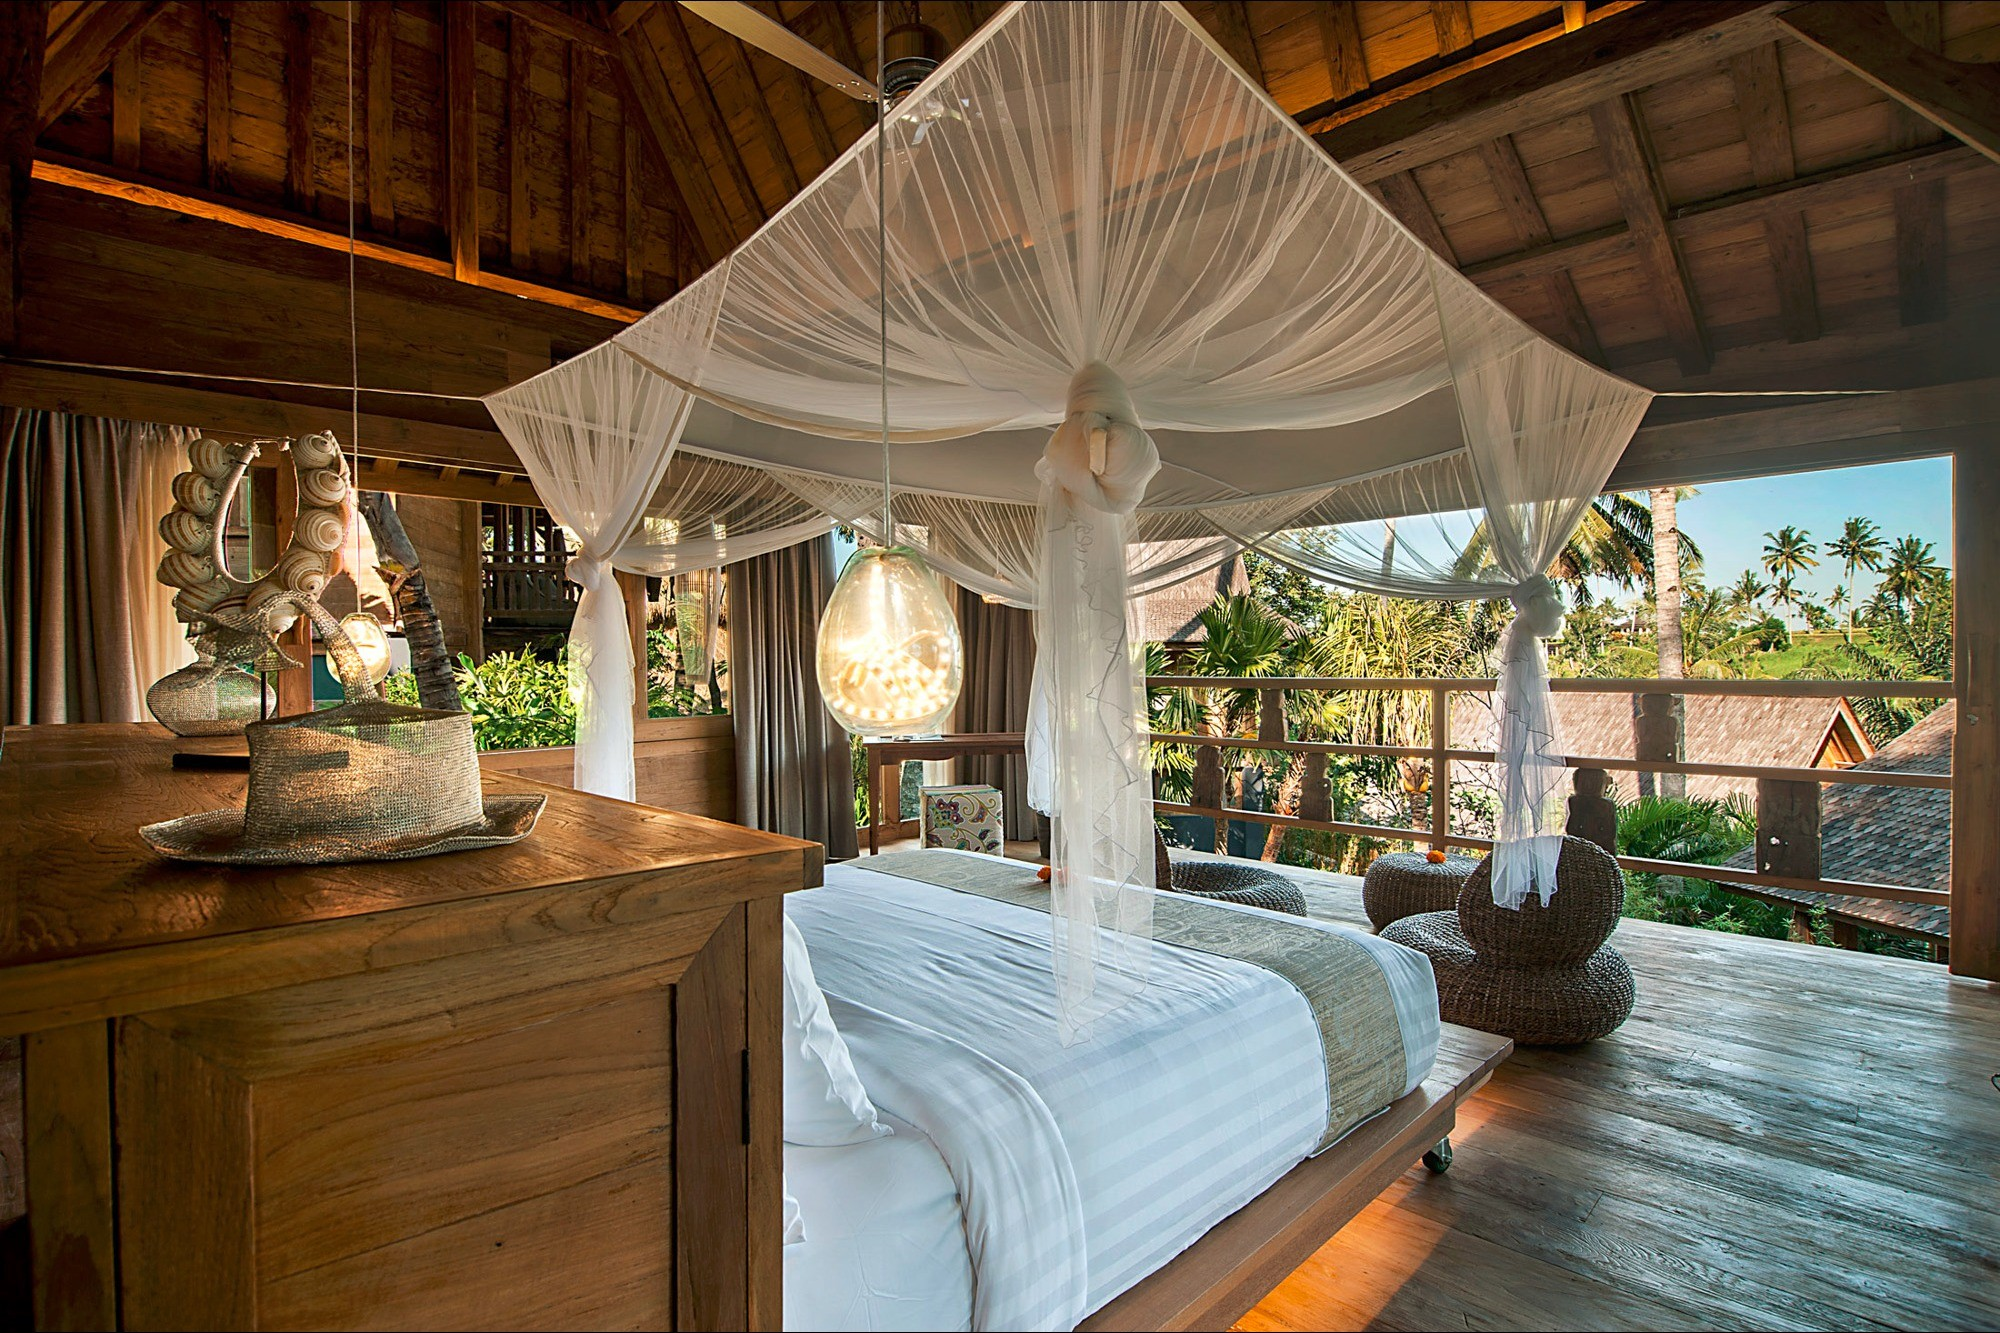 REST - Rest in your tranquil suite set amongst tropical gardens.